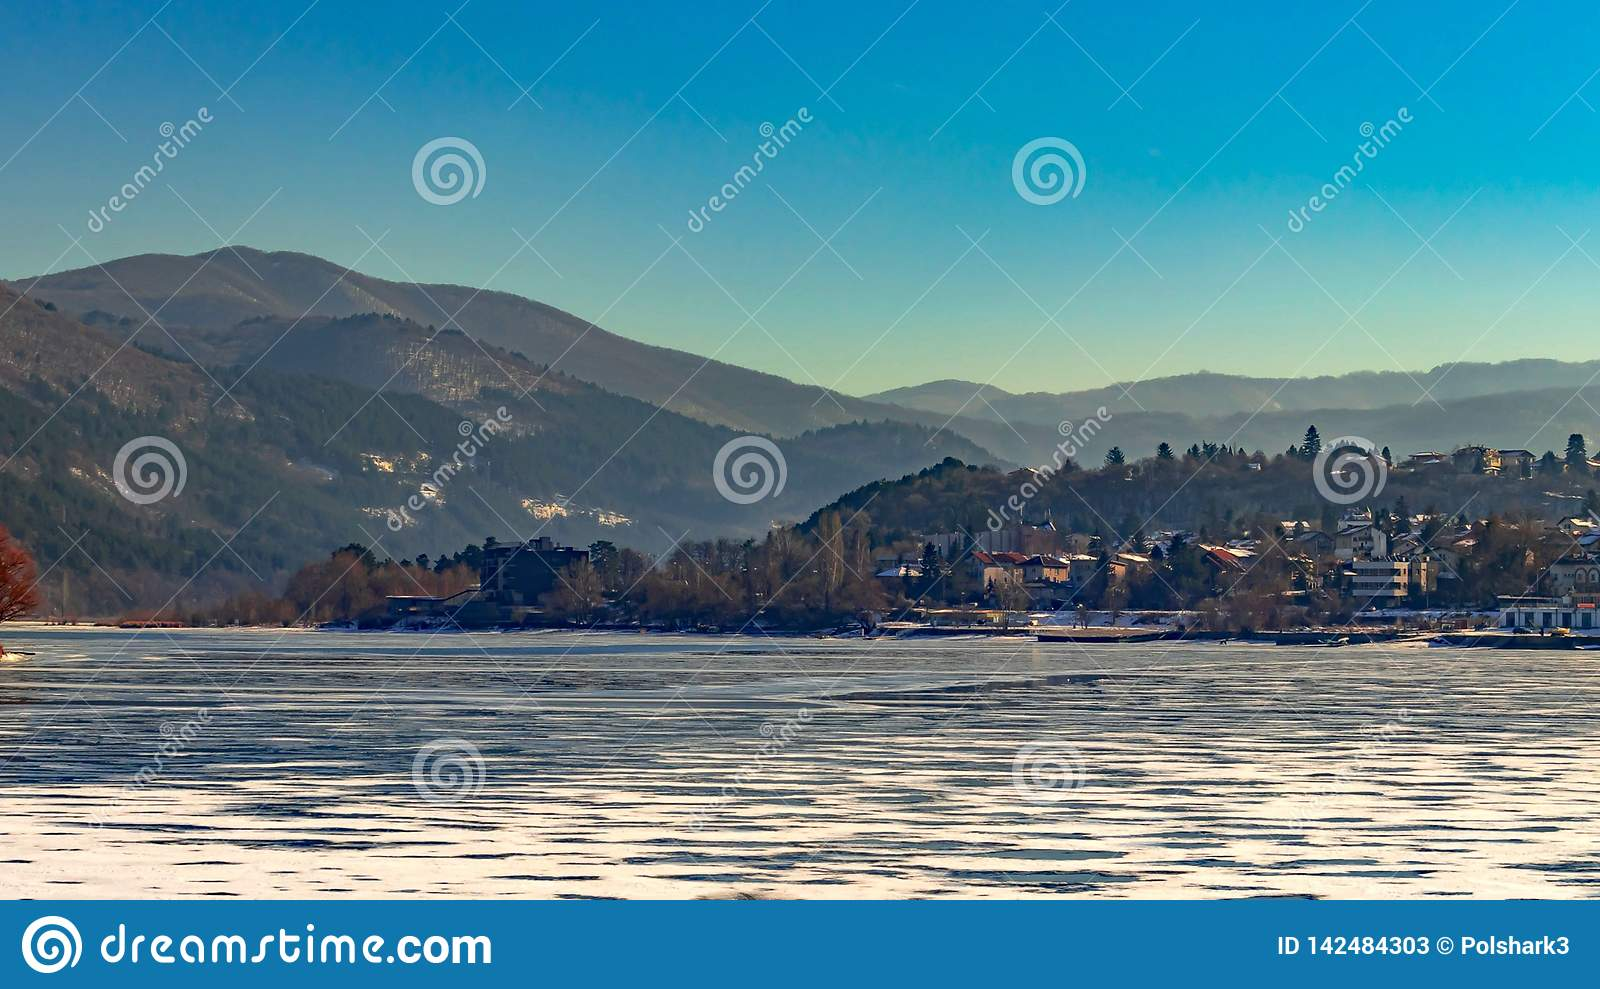 Beautiful landscape, frozen lake covered with snow, beautiful mountains